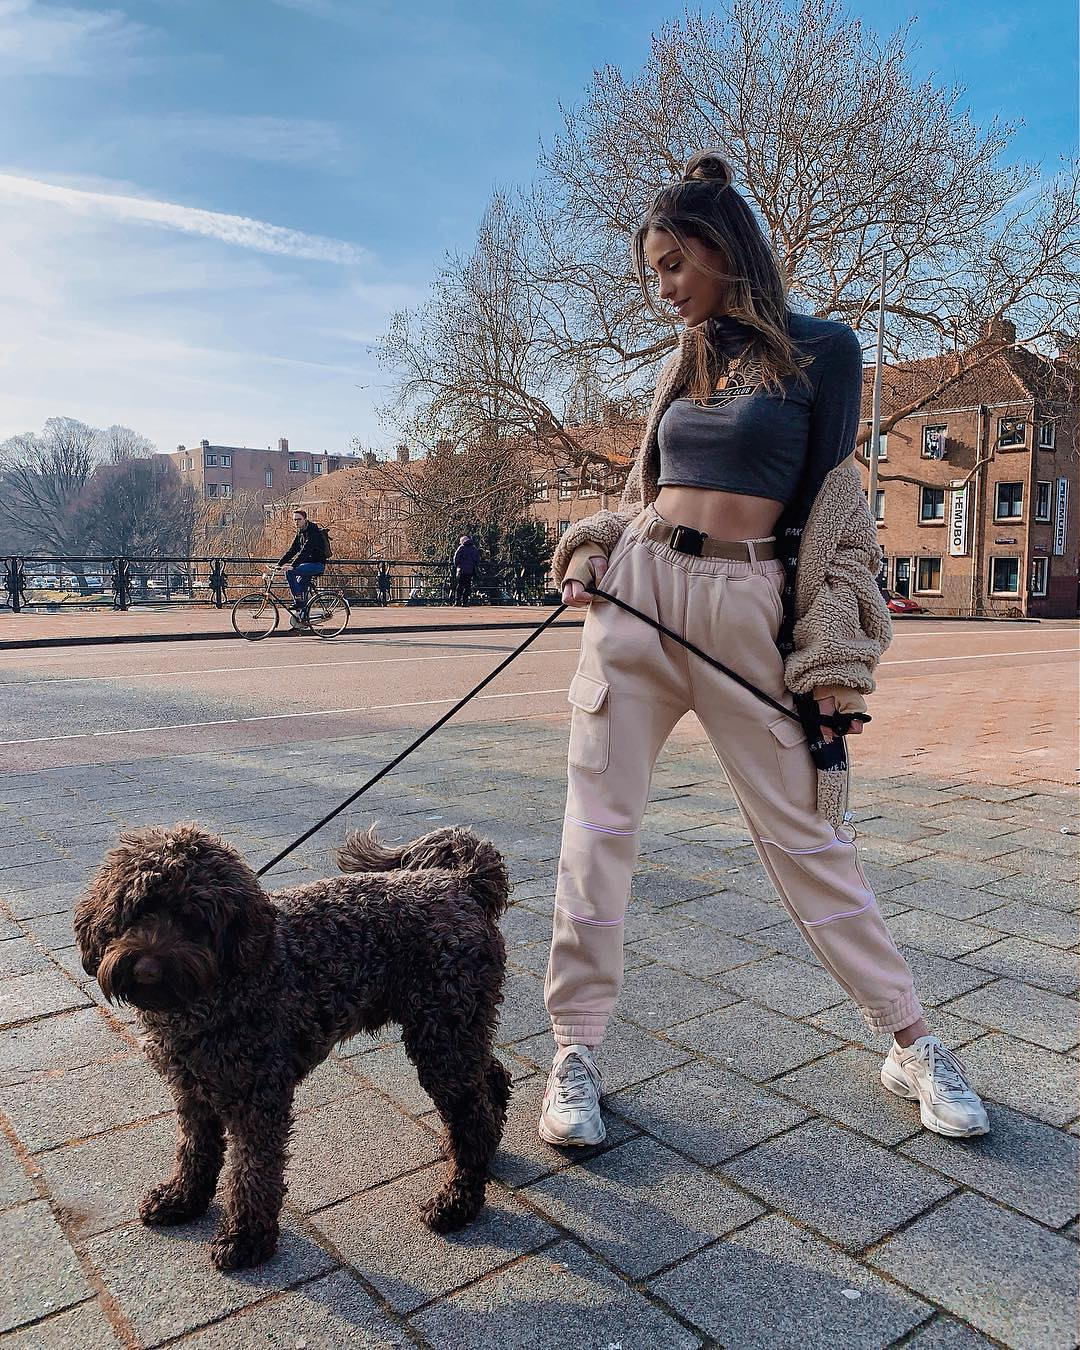 Best Casual Day Walk: Cargo Sweatpants, Crop Top And White Sneakers 2021